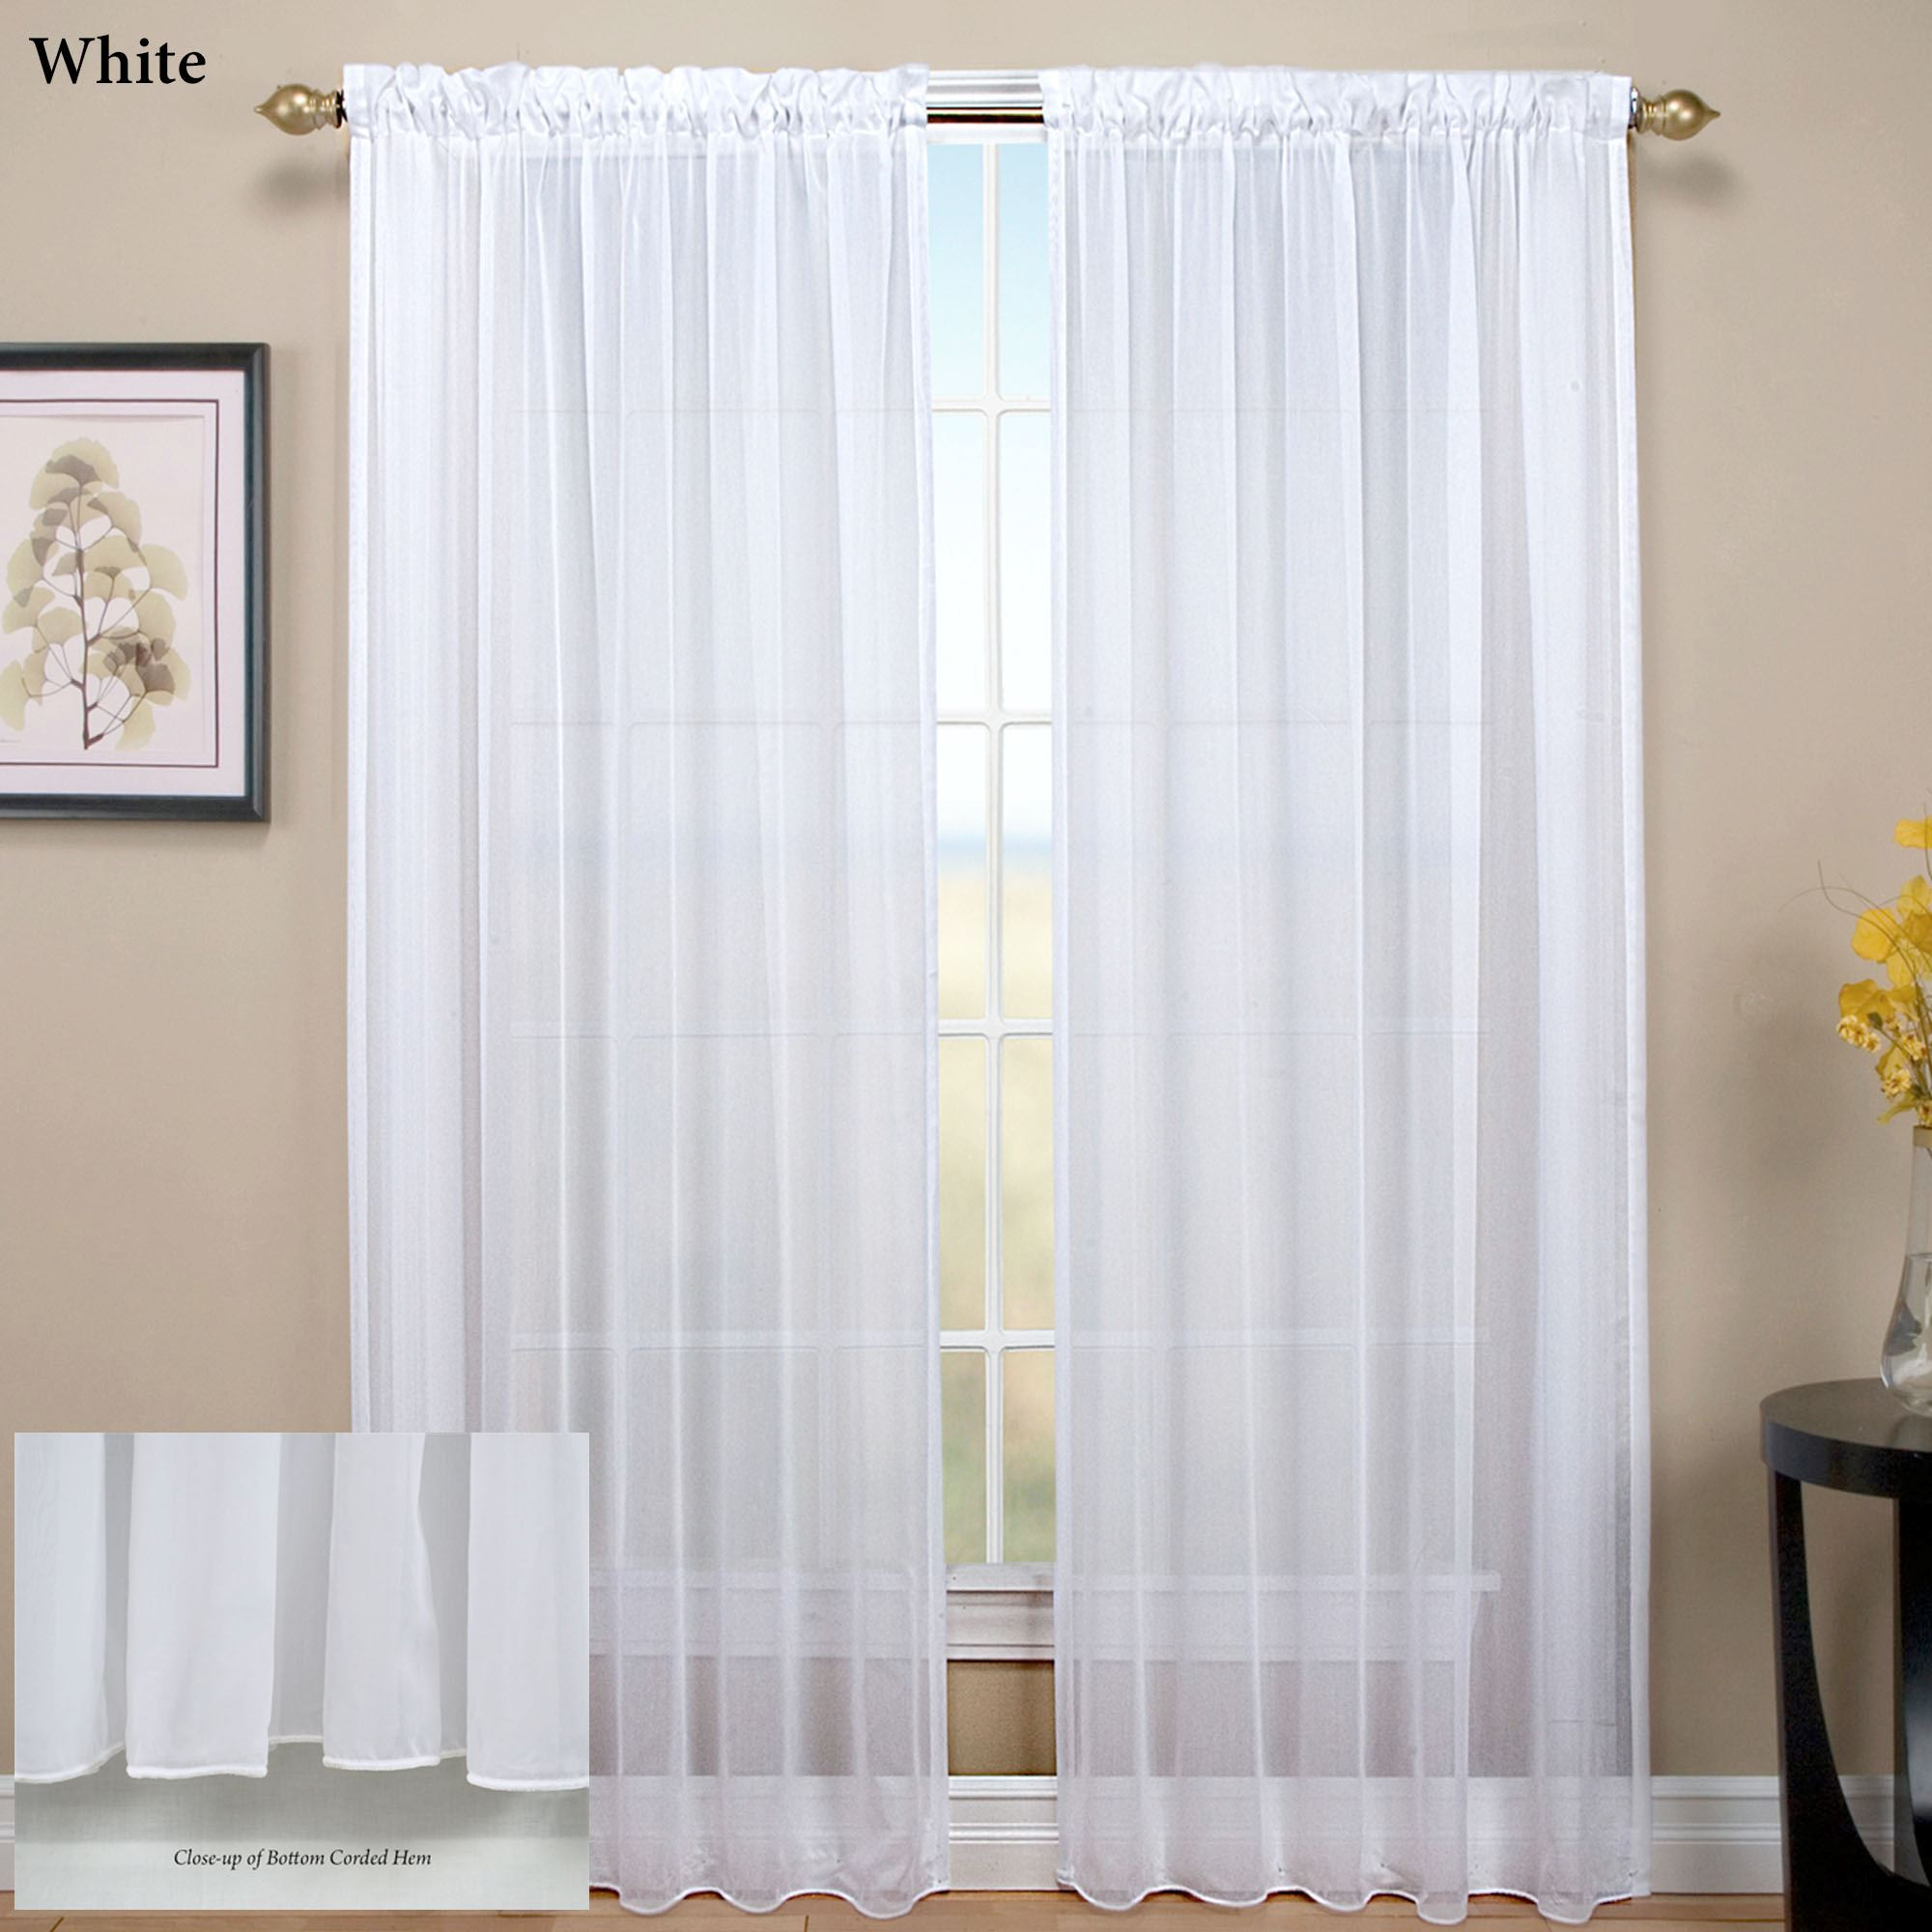 Sheer Curtain tergaline sheer curtain panel BLUQXBR